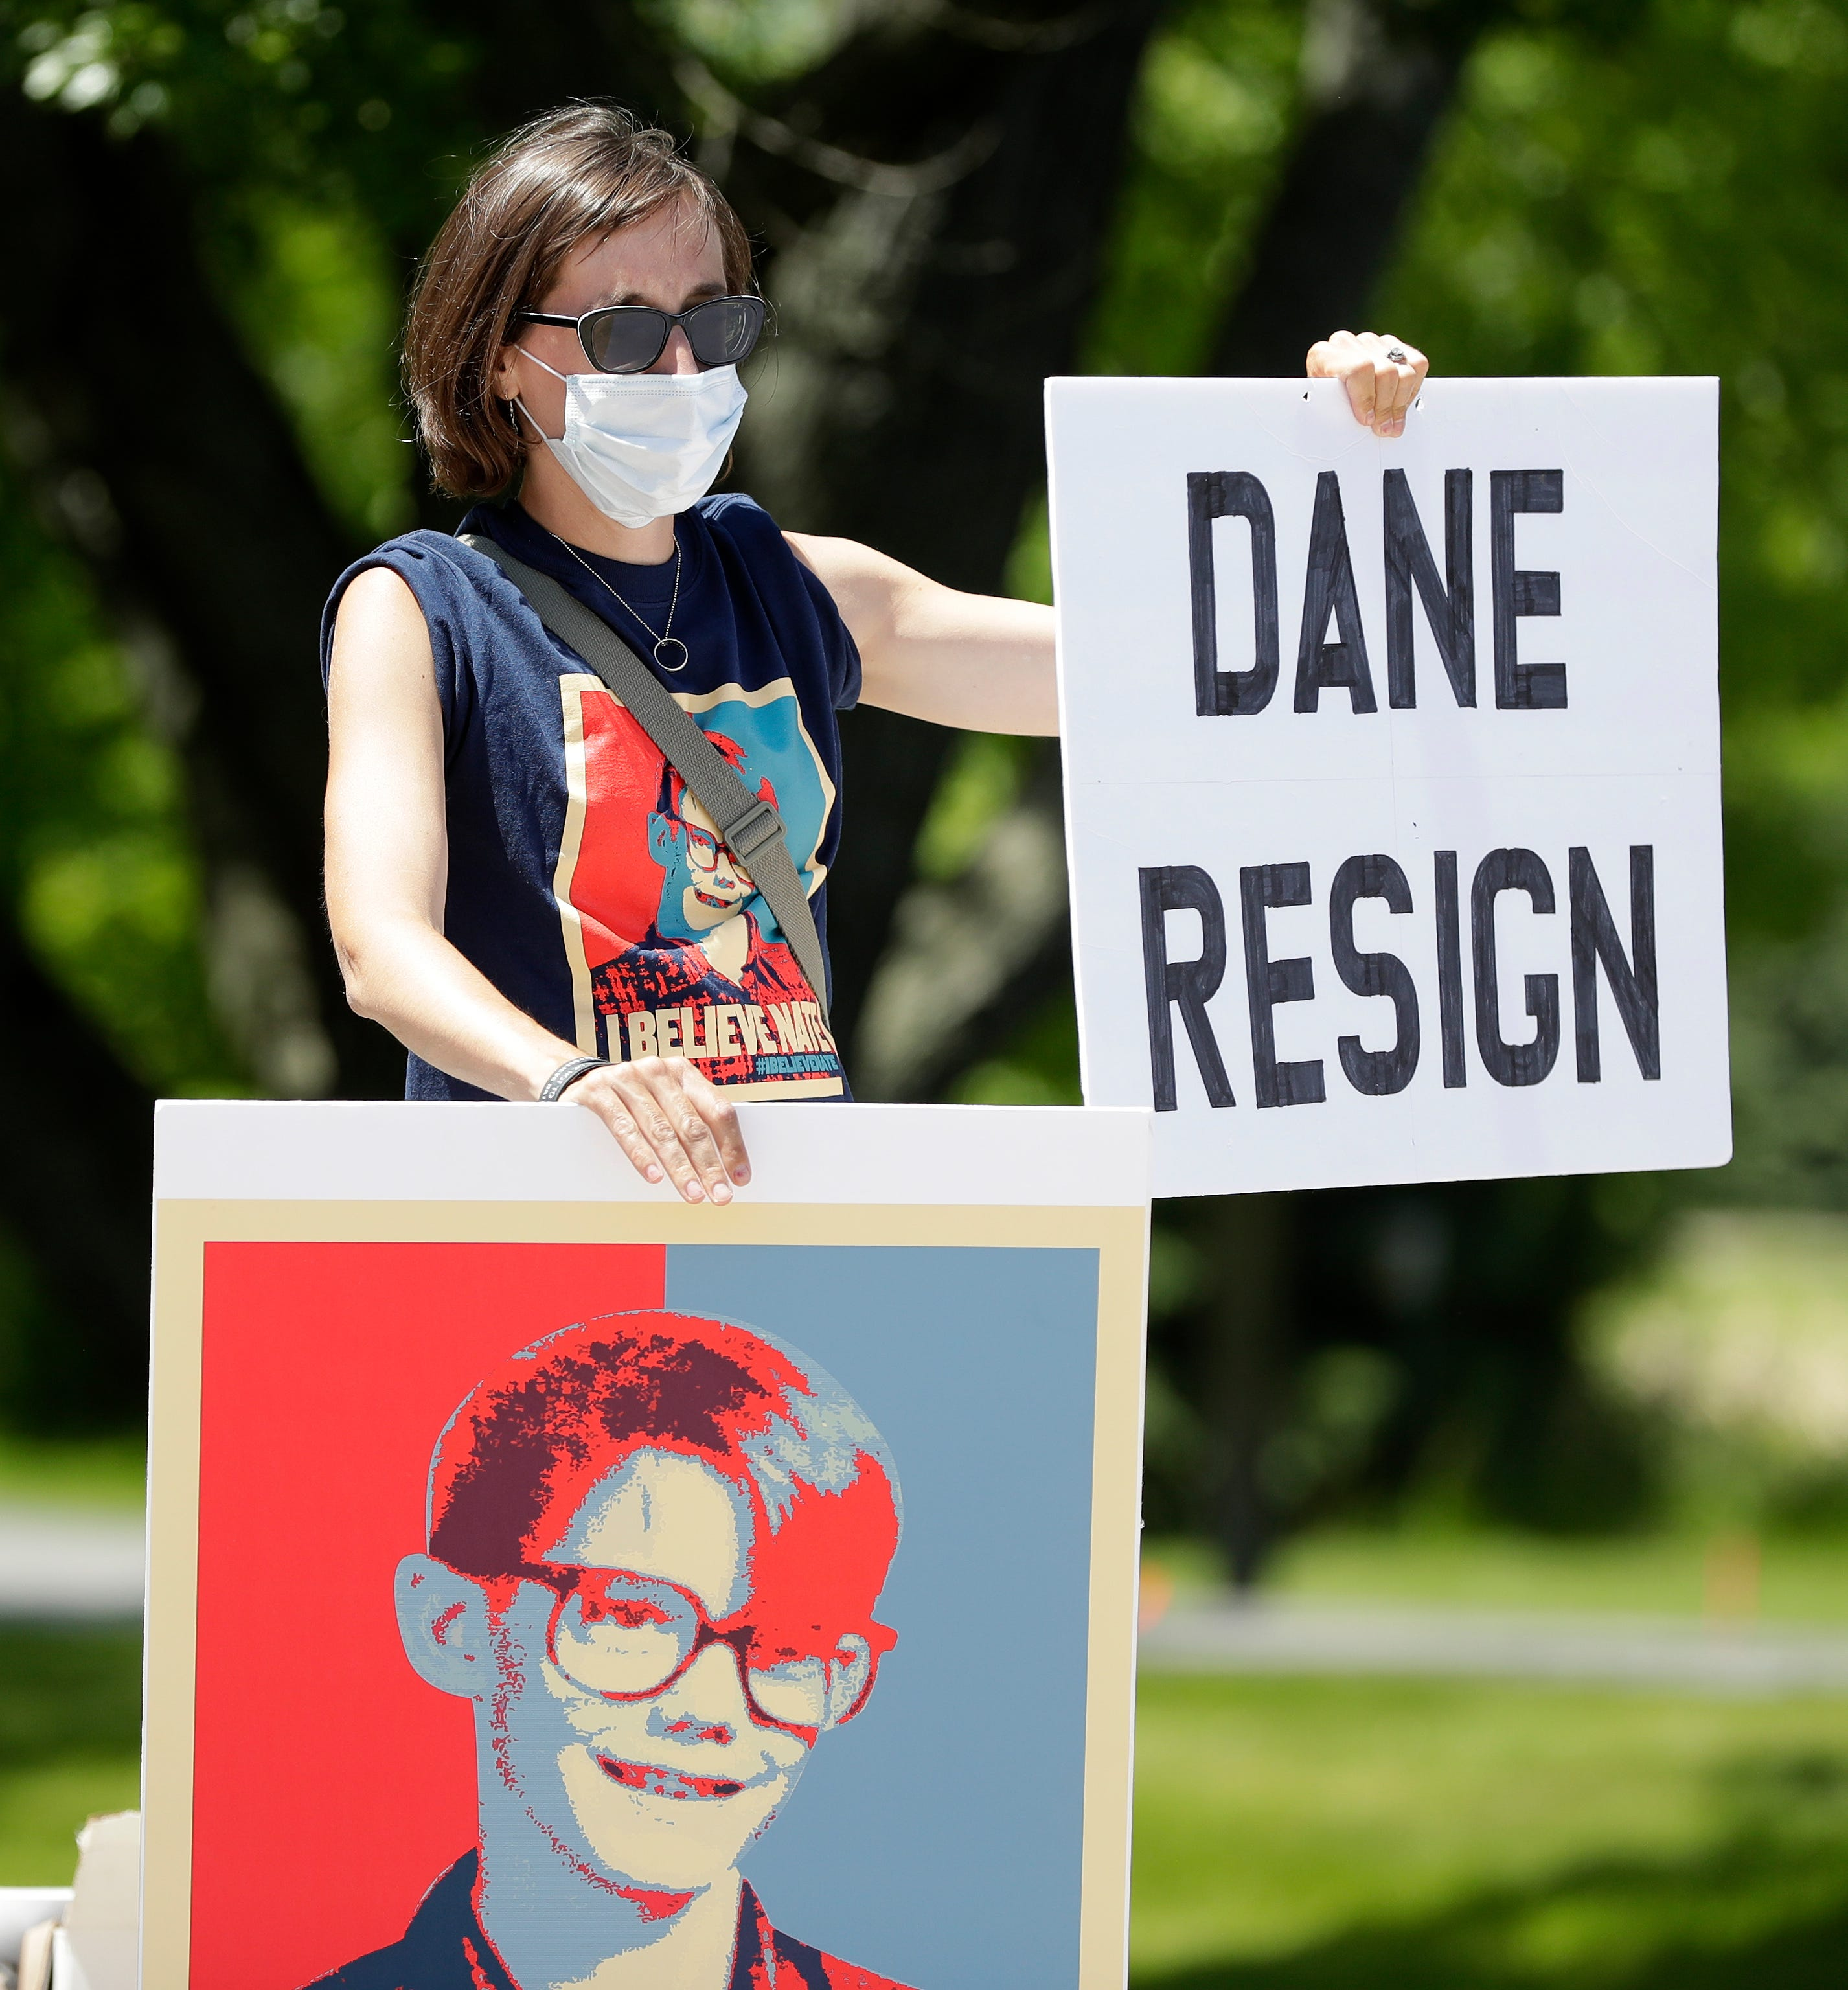 Karen Lindstrom, wife of Nate Lindstrom, protests along Webster Avenue outside St. Norbert Abbey on June 6, 2020, at the De Pere-Allouez border. Nate Lindstrom, 45, said three priests sexually abused him as a teen; he died by suicide in March 2020.